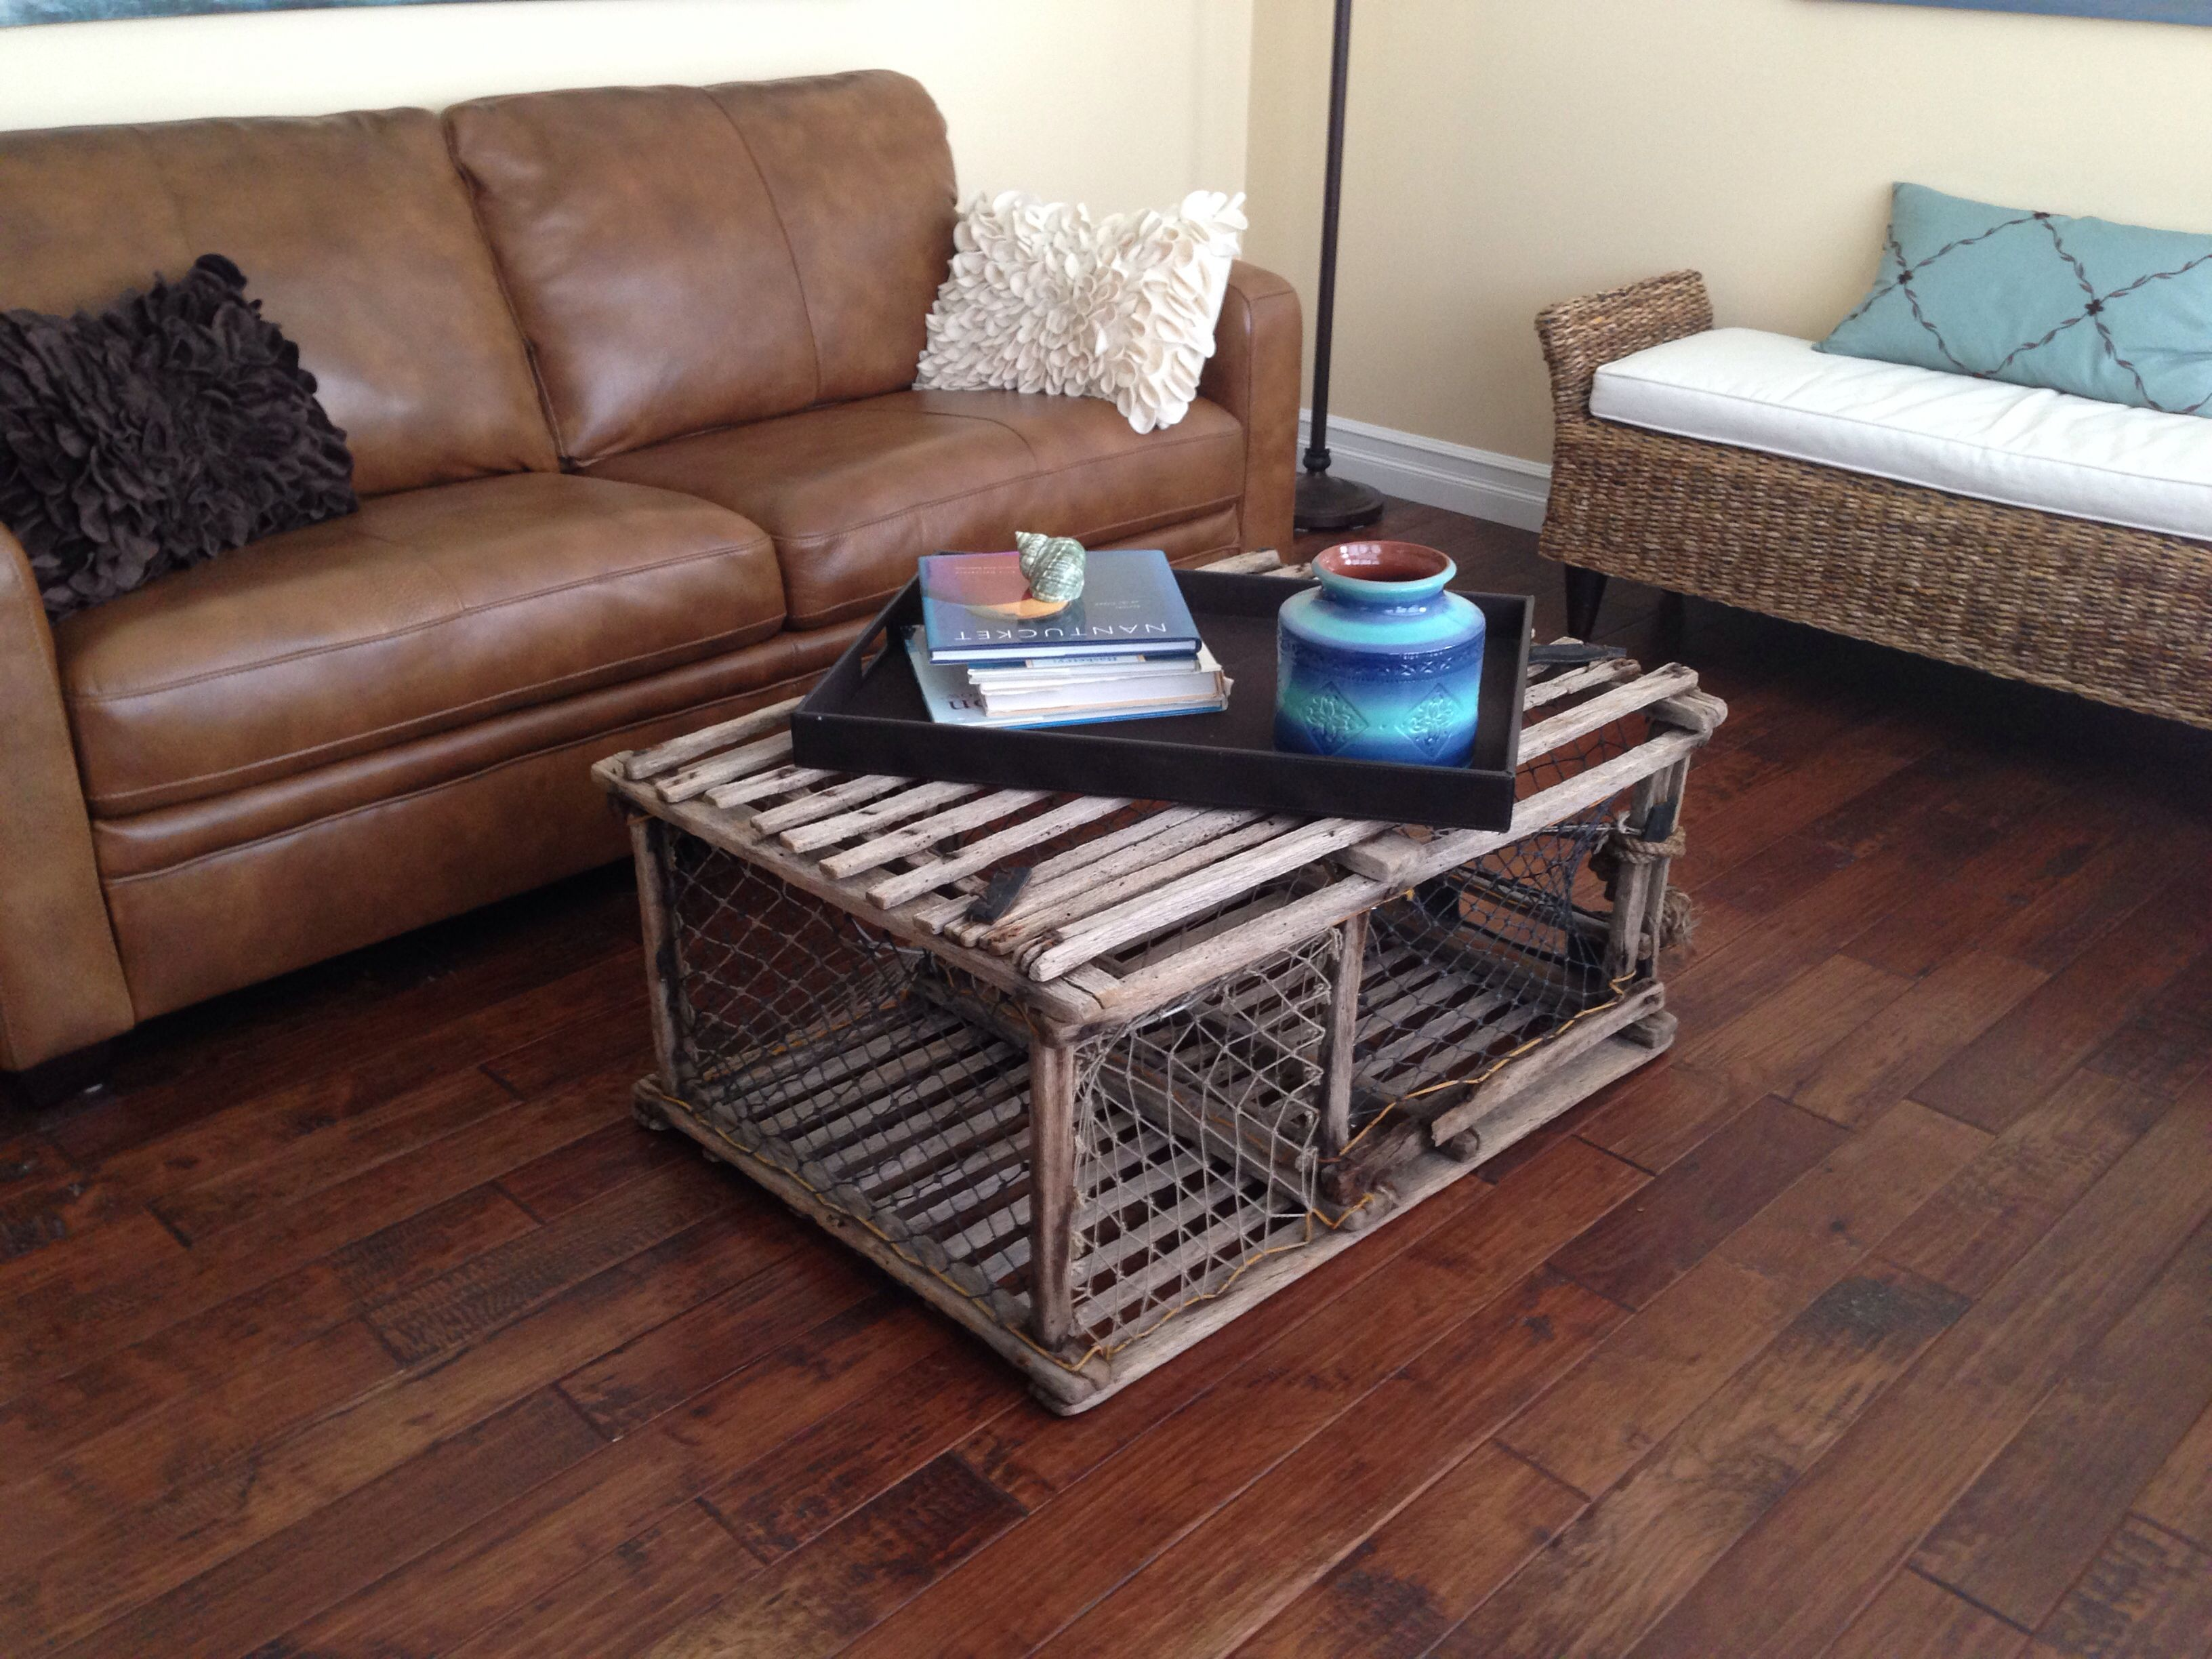 My Quirky Lobster Trap Coffee Table Coffee Table Table Home Decor [ 2448 x 3264 Pixel ]